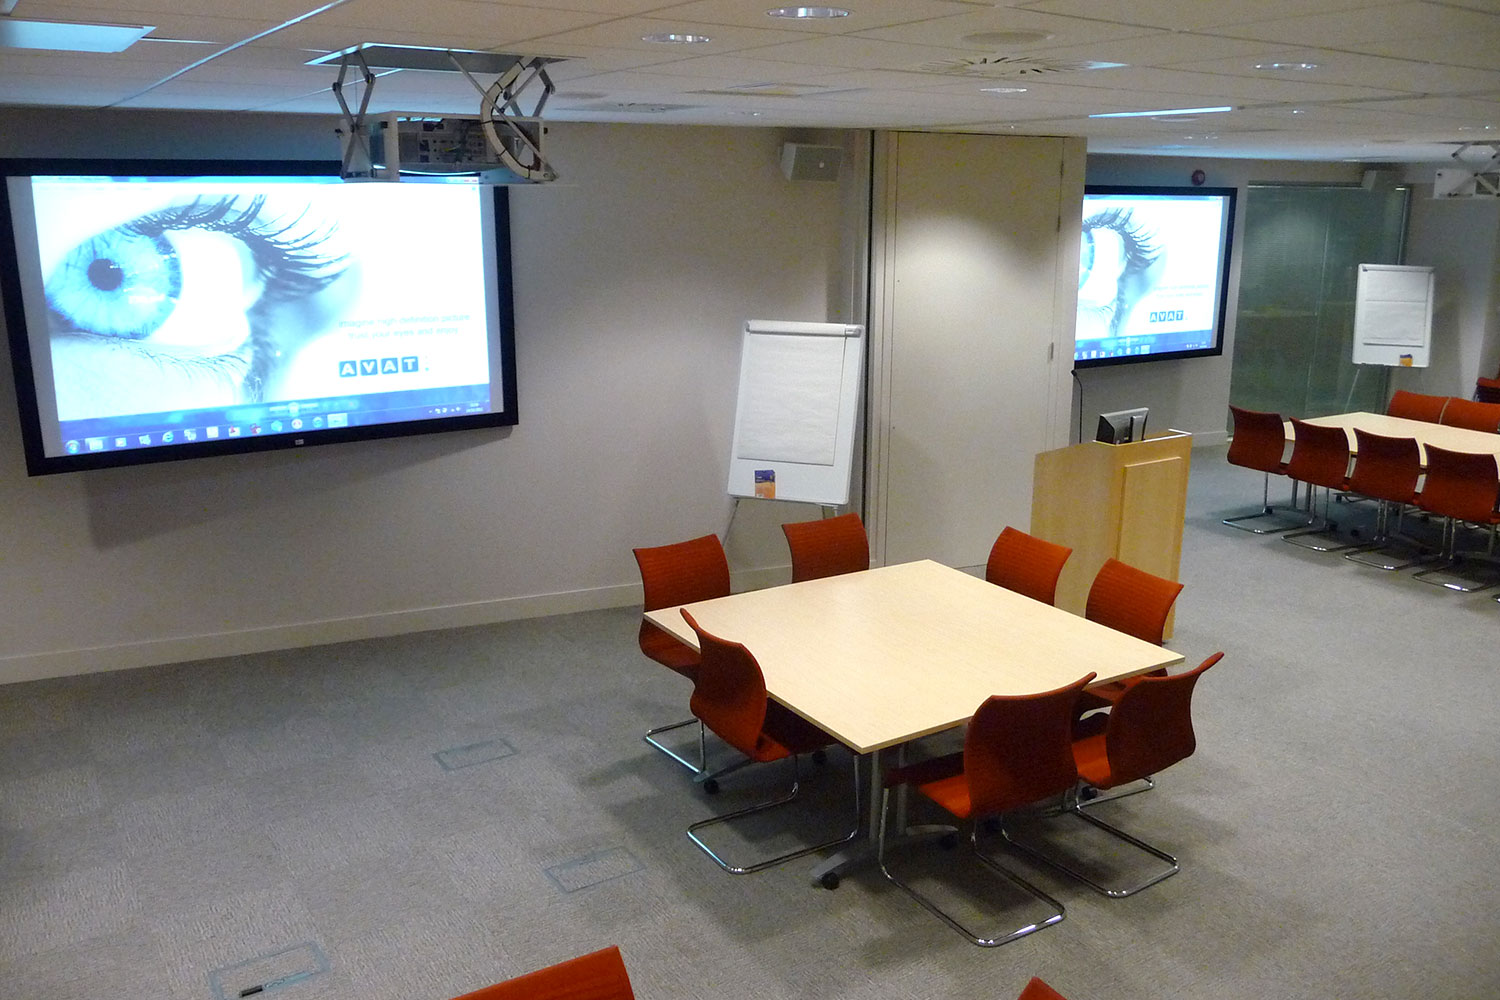 tui training room AV